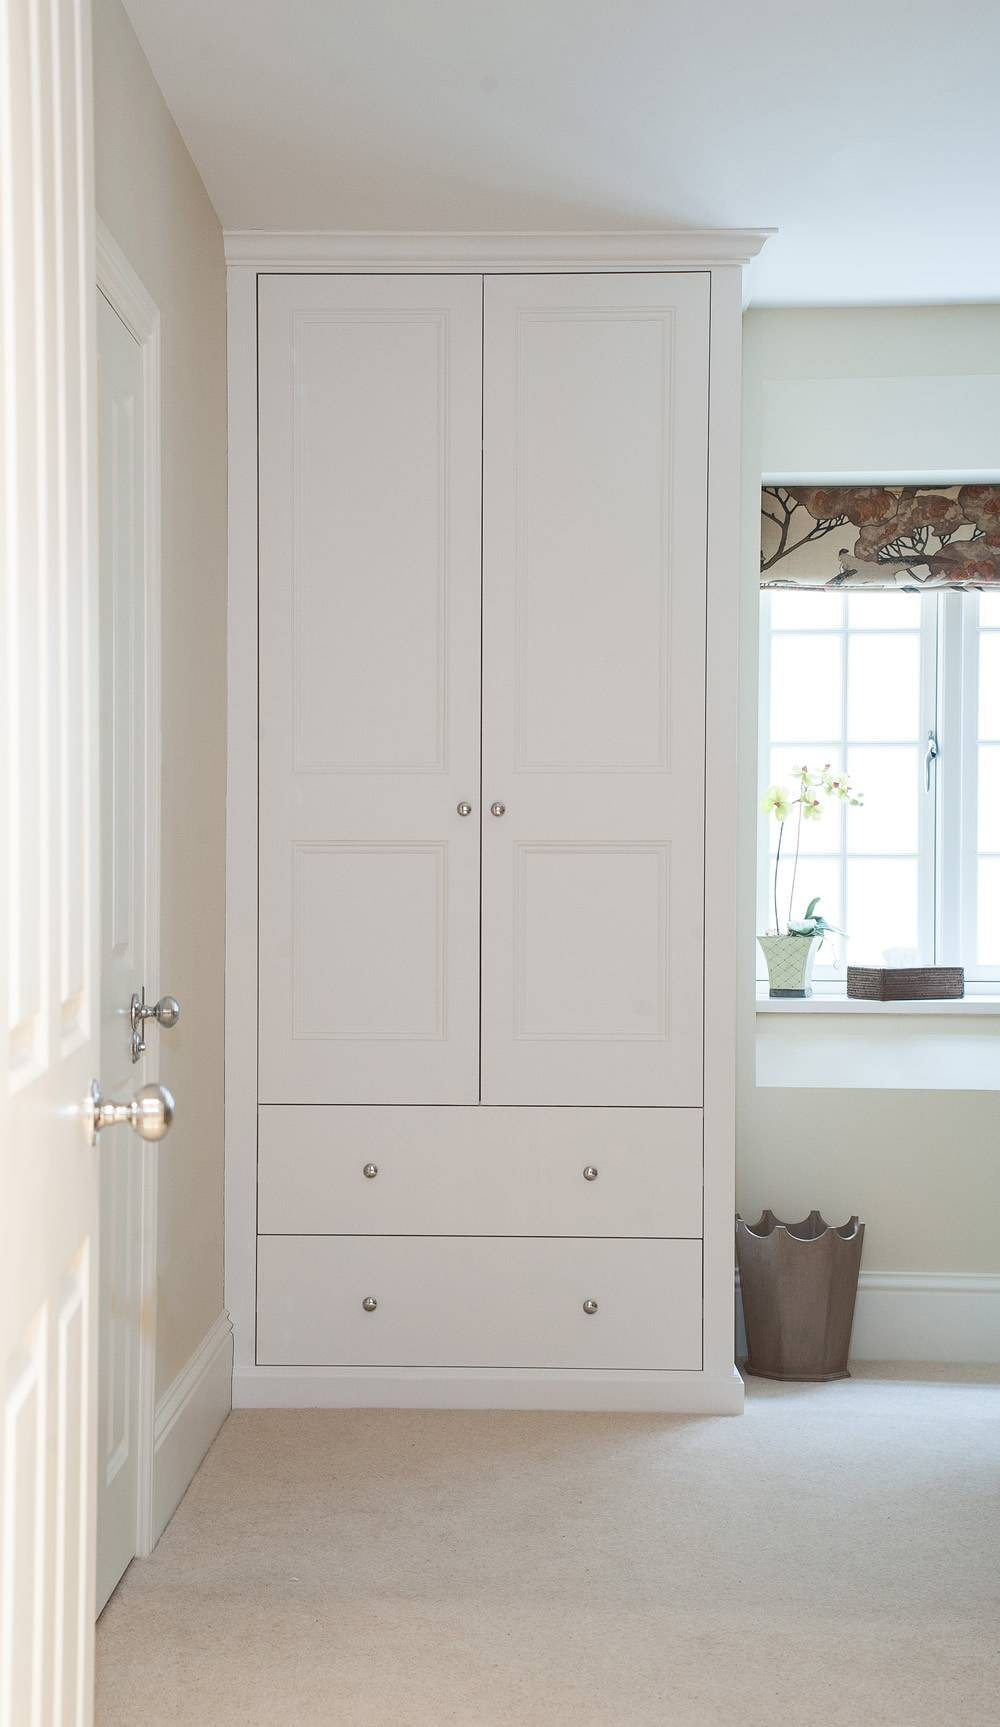 Bespoke Fitted Wardrobes And Cupboards | London Alcove Company In Drawers For Fitted Wardrobes (View 6 of 30)